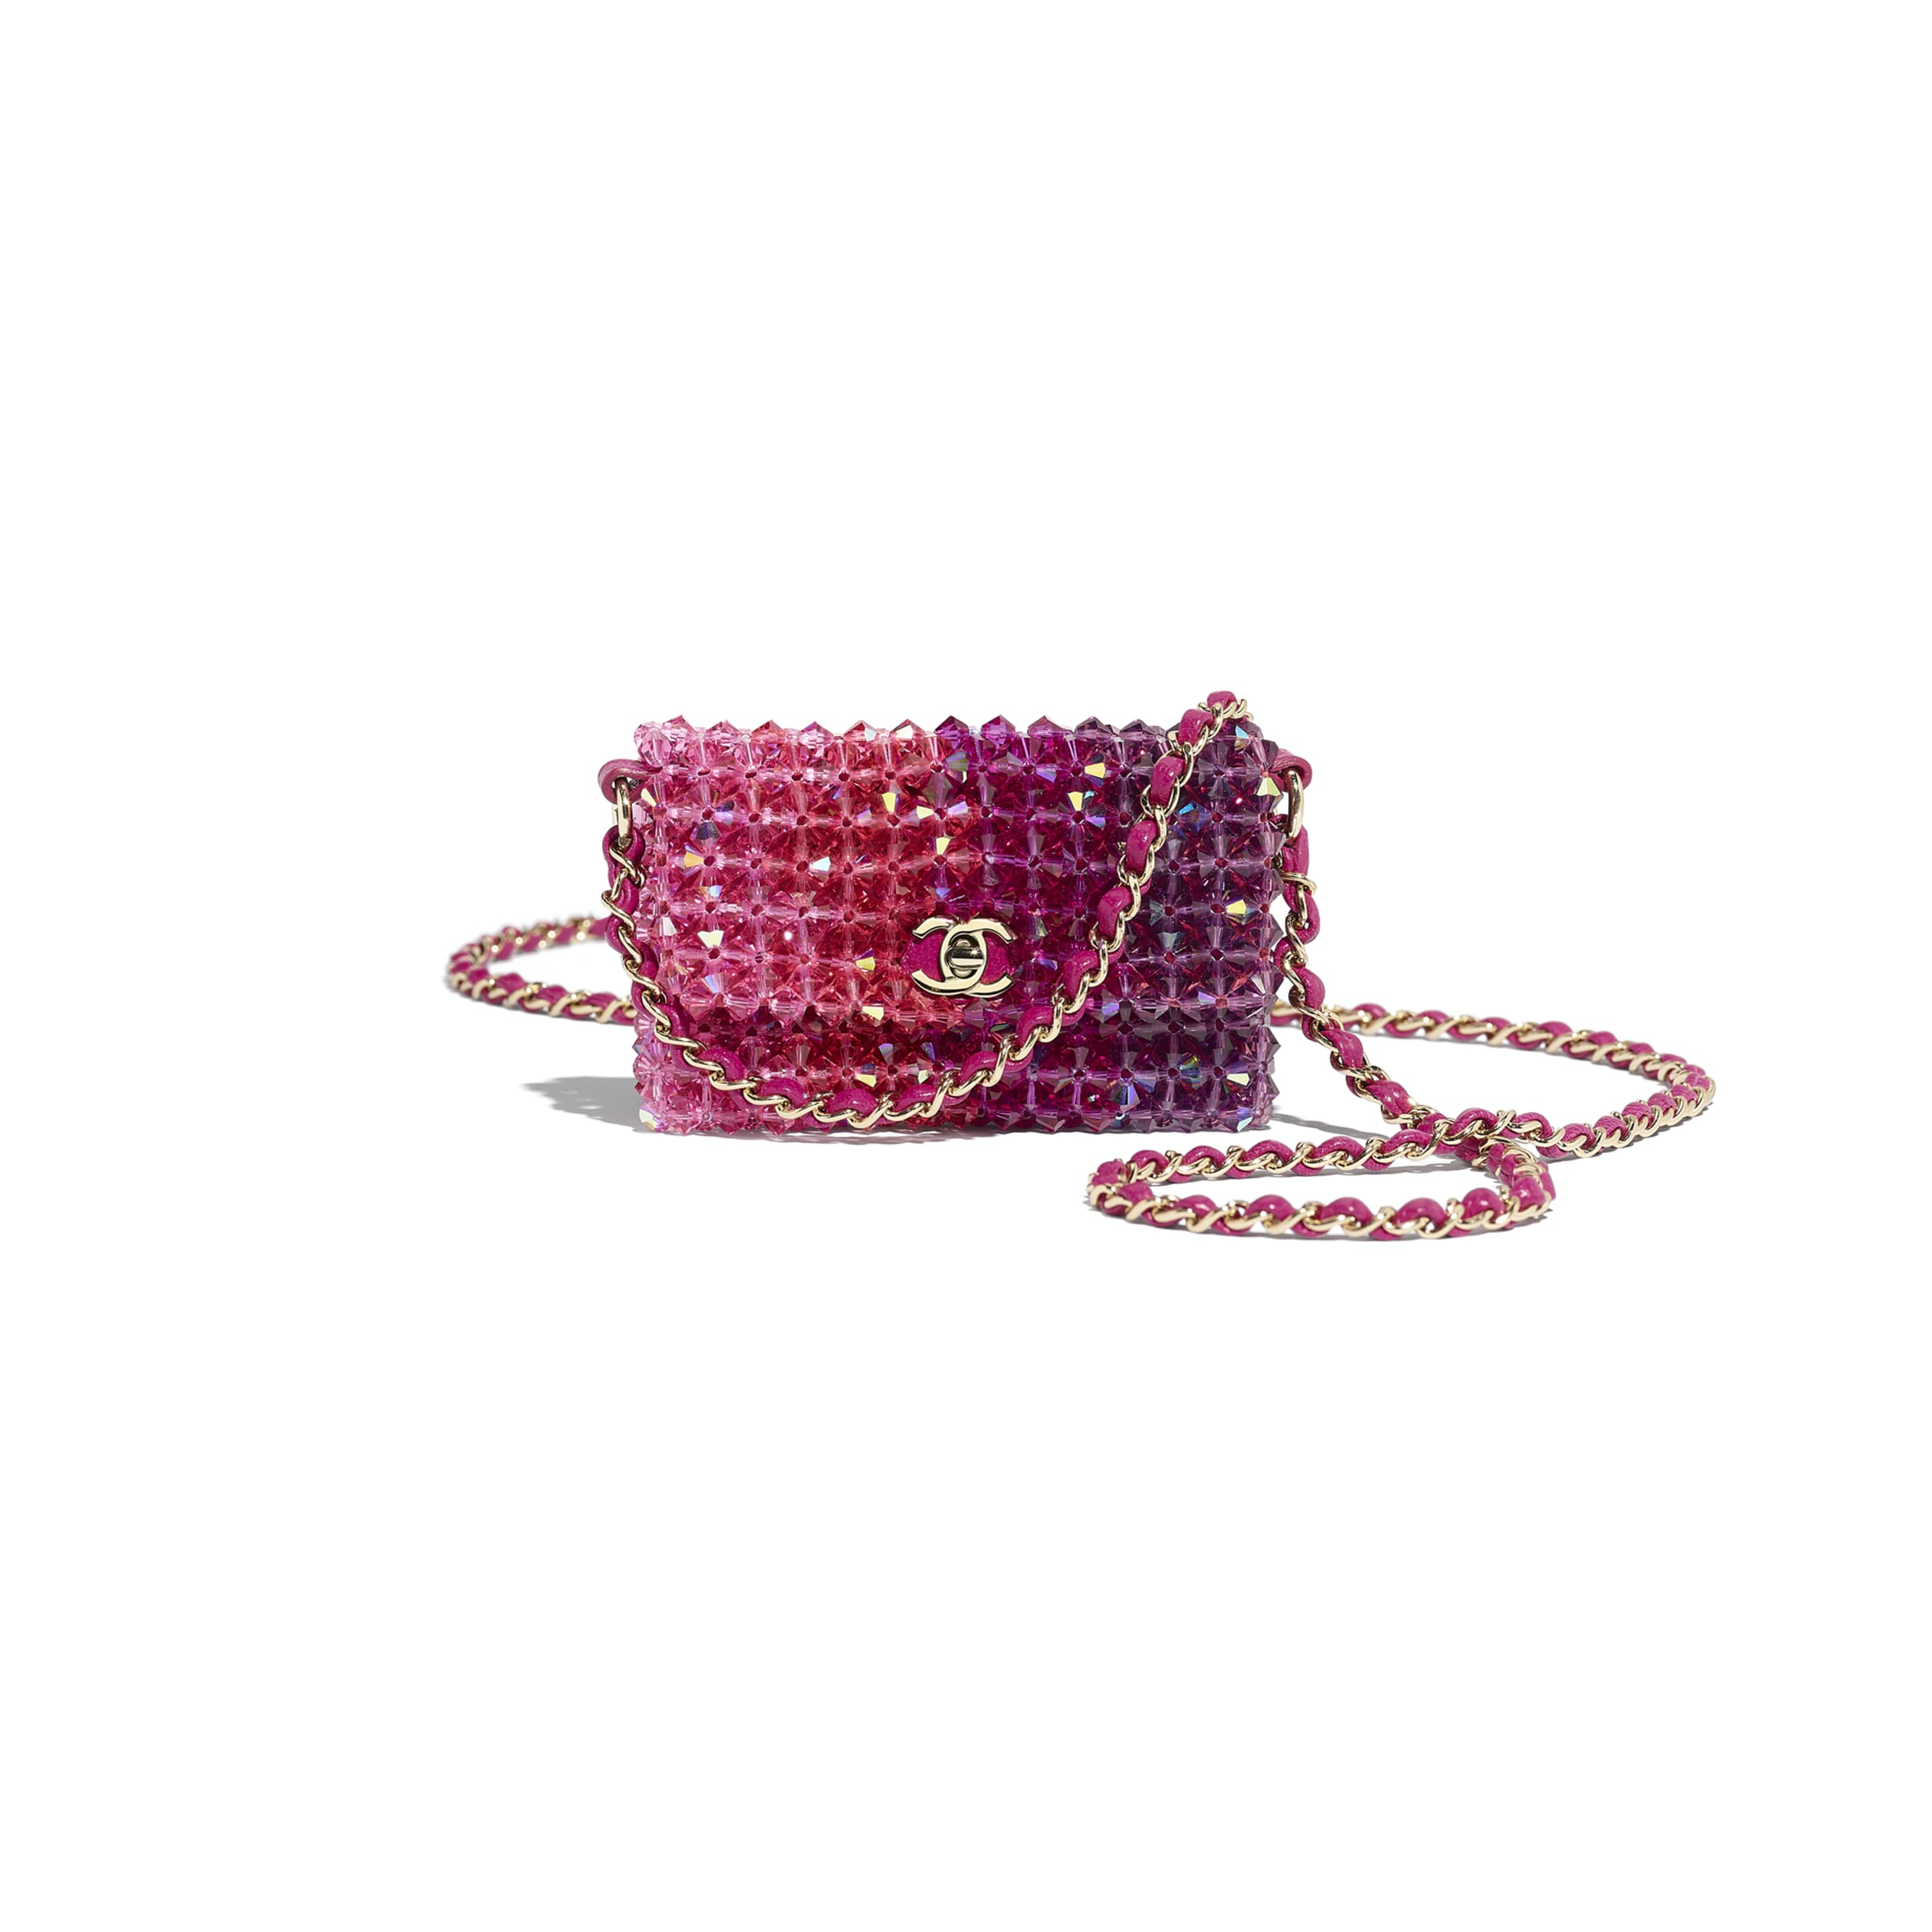 Mini Flap Bag - Fuchsia, Pink & Light Pink - Crystal & Gold-Tone Metal - Default view - see standard sized version